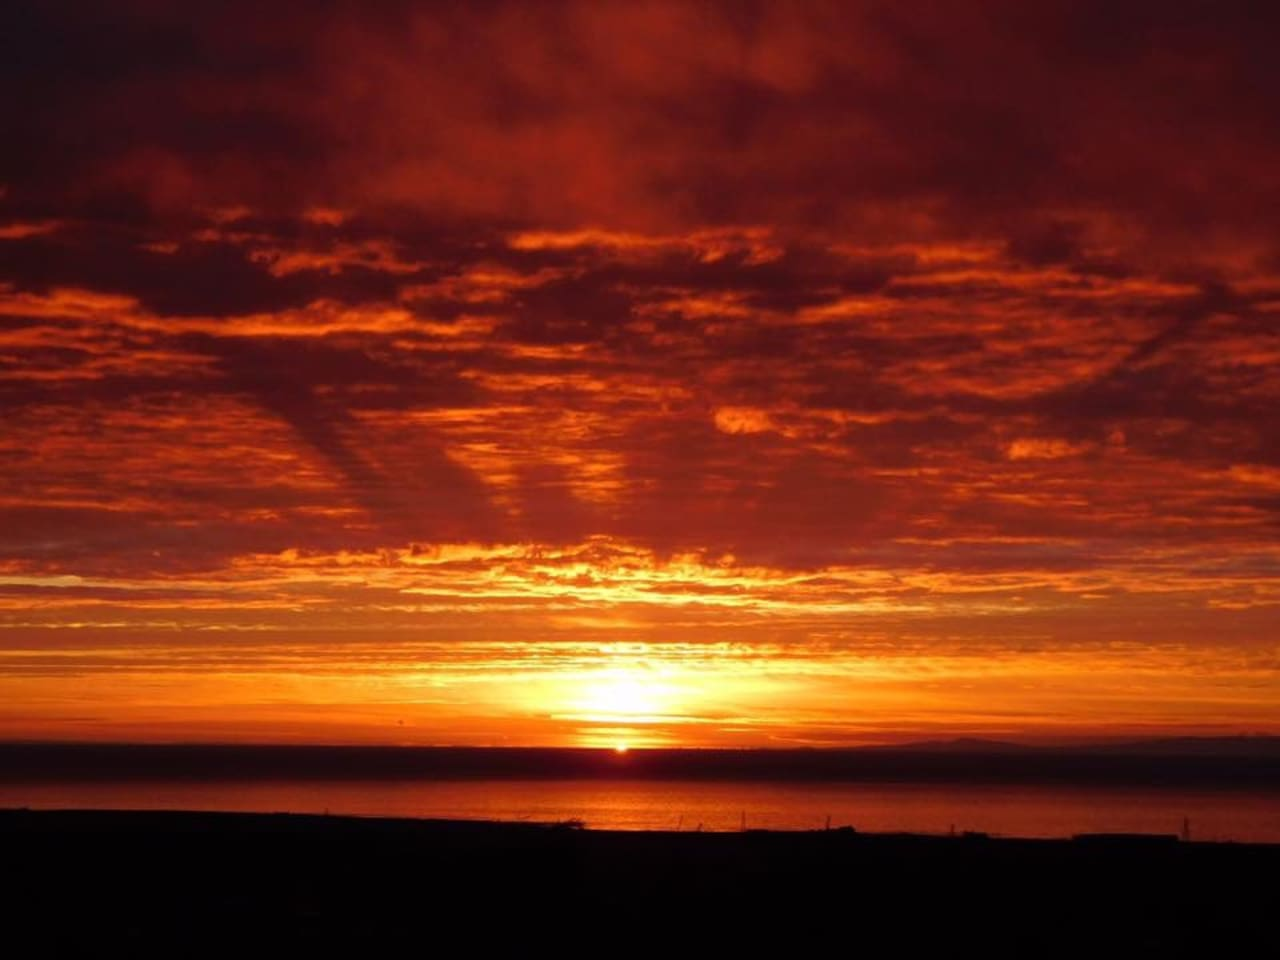 A sunset view from the house across the Irish Sea to the Isle of Man.